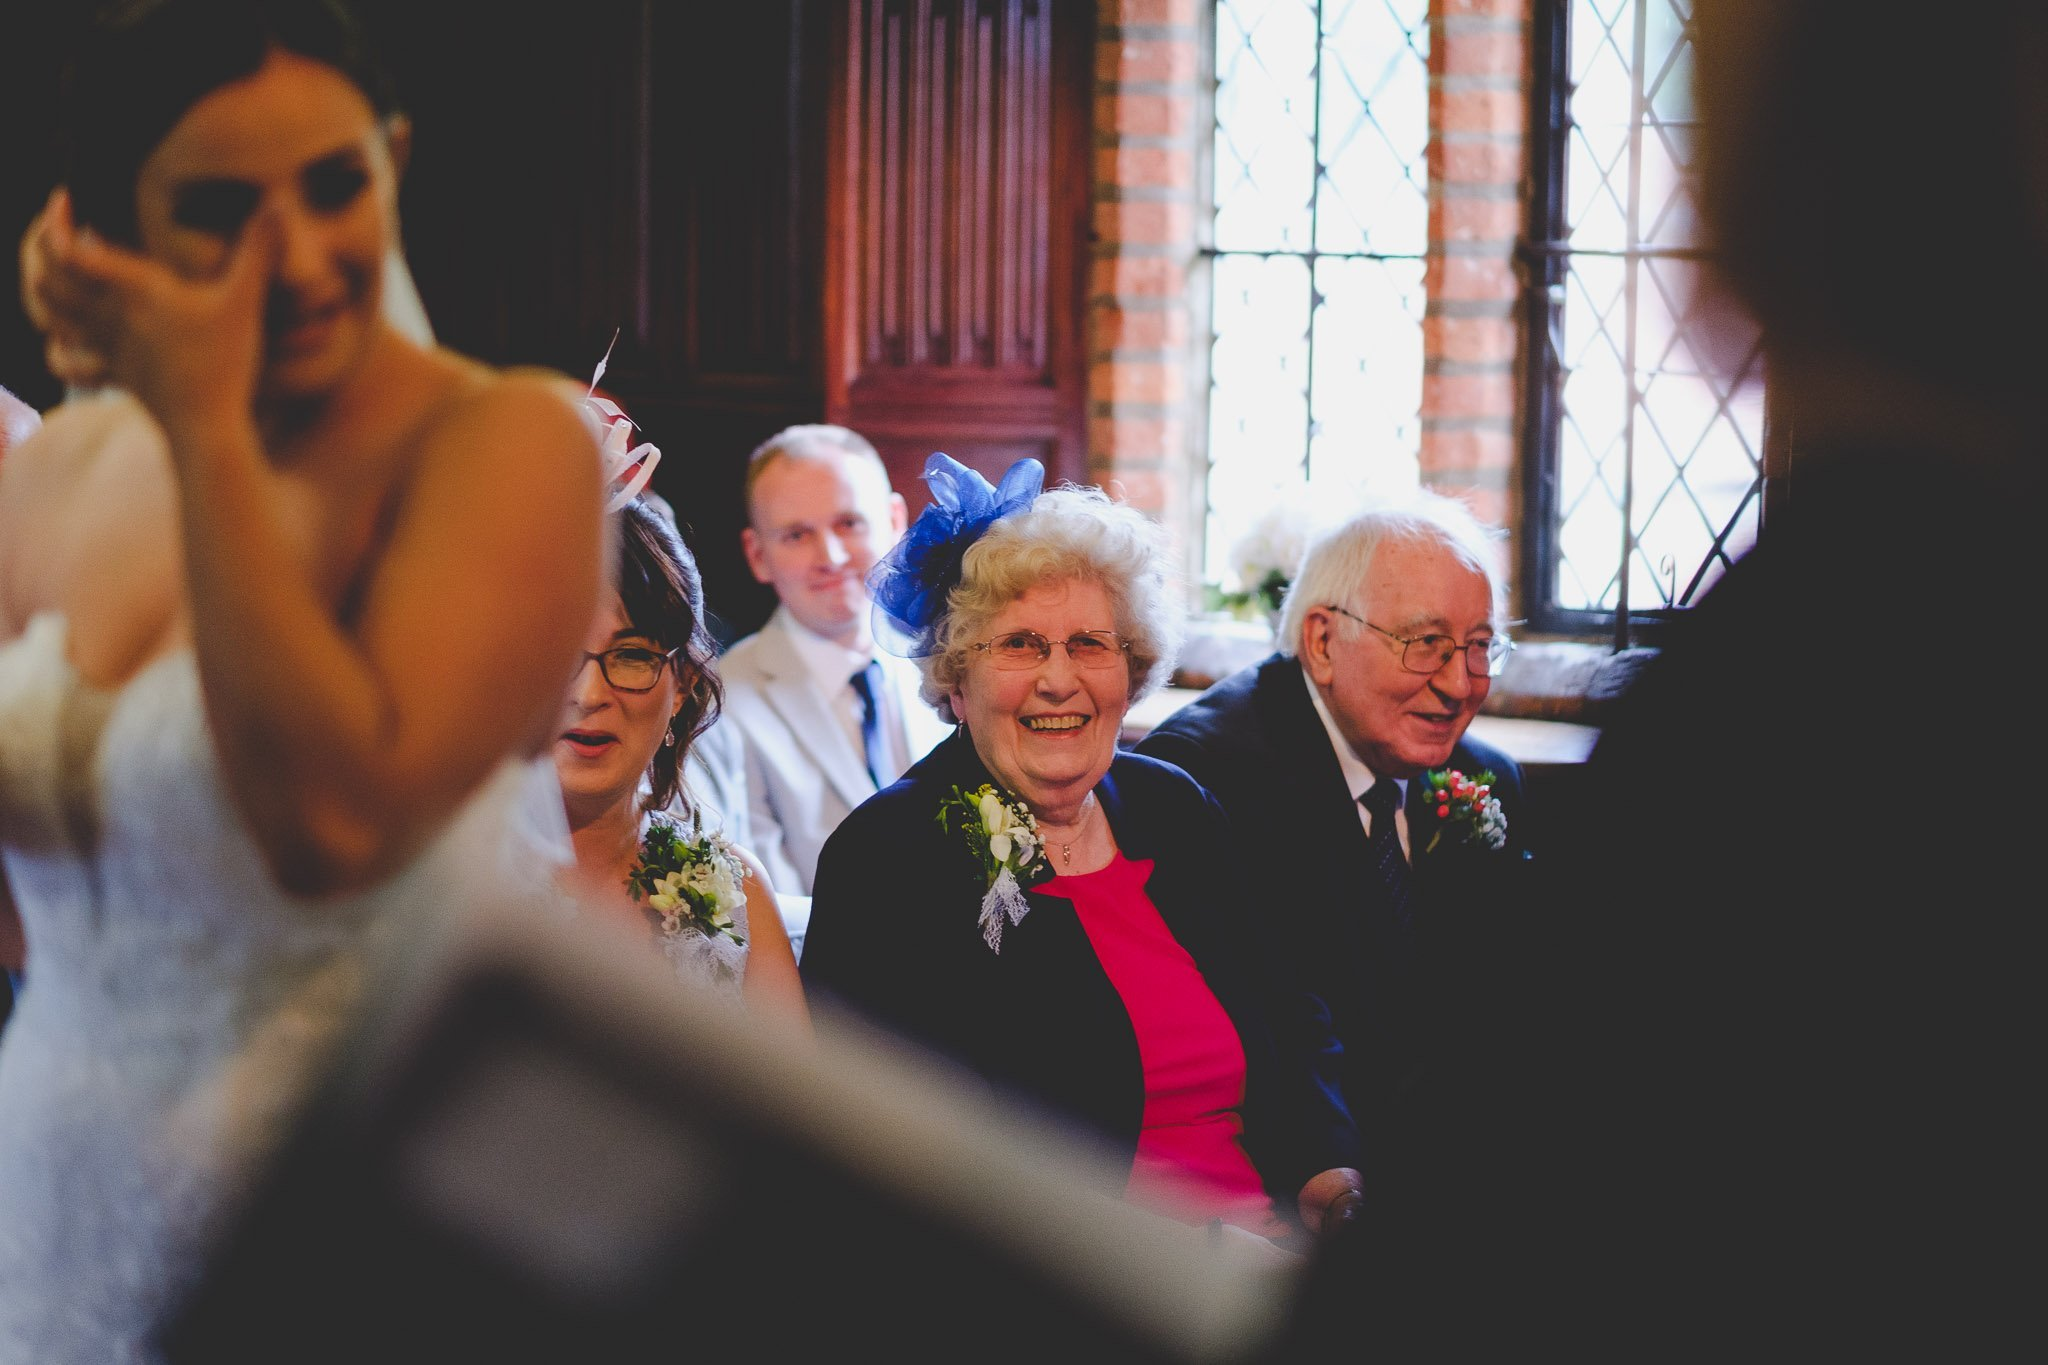 Laughing wedding guest at Leez Priory wedding